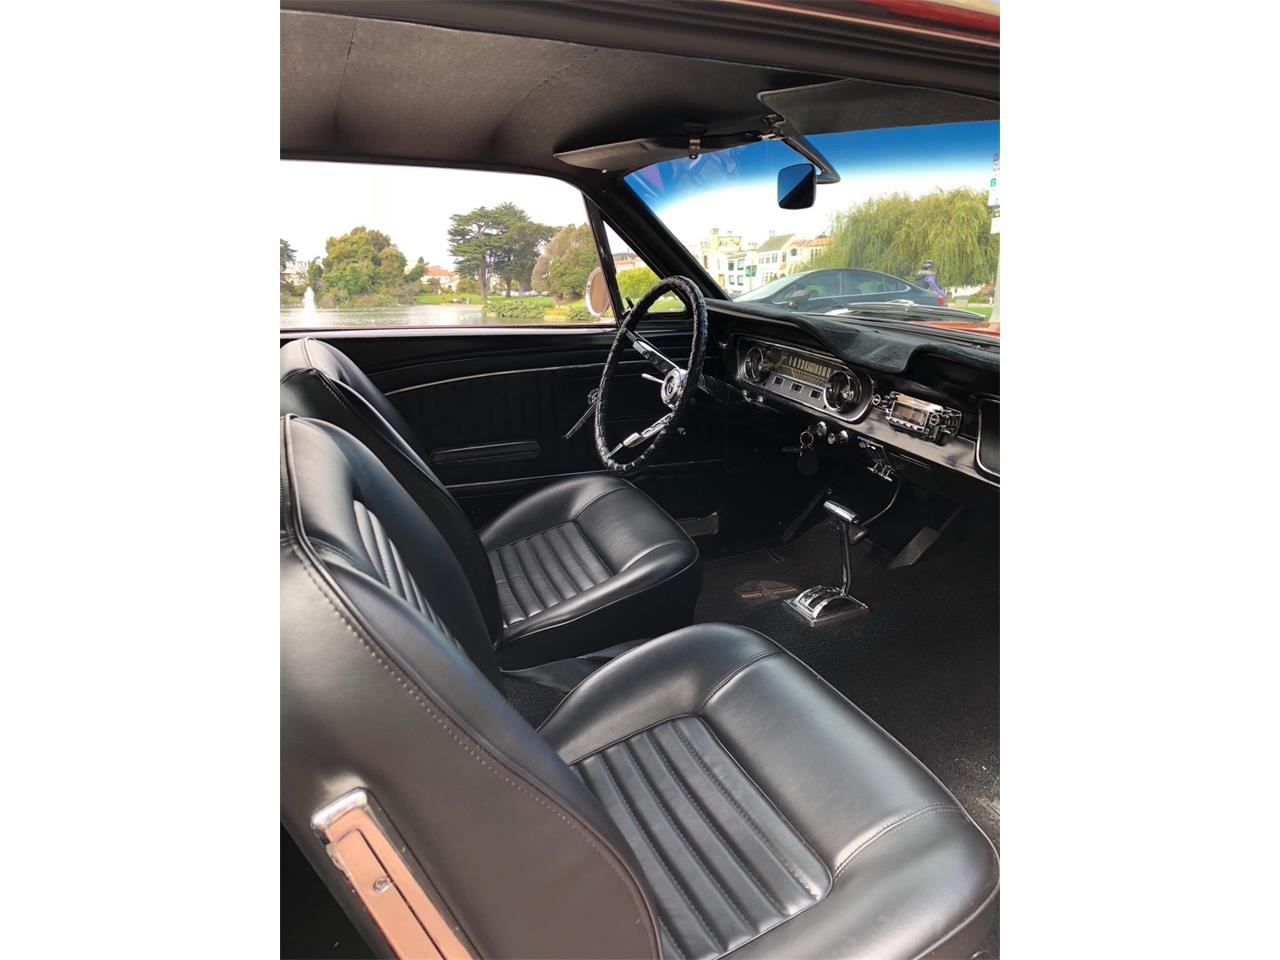 Large Picture of '65 Ford Mustang located in San Francisco California - $17,500.00 Offered by a Private Seller - OJ2O